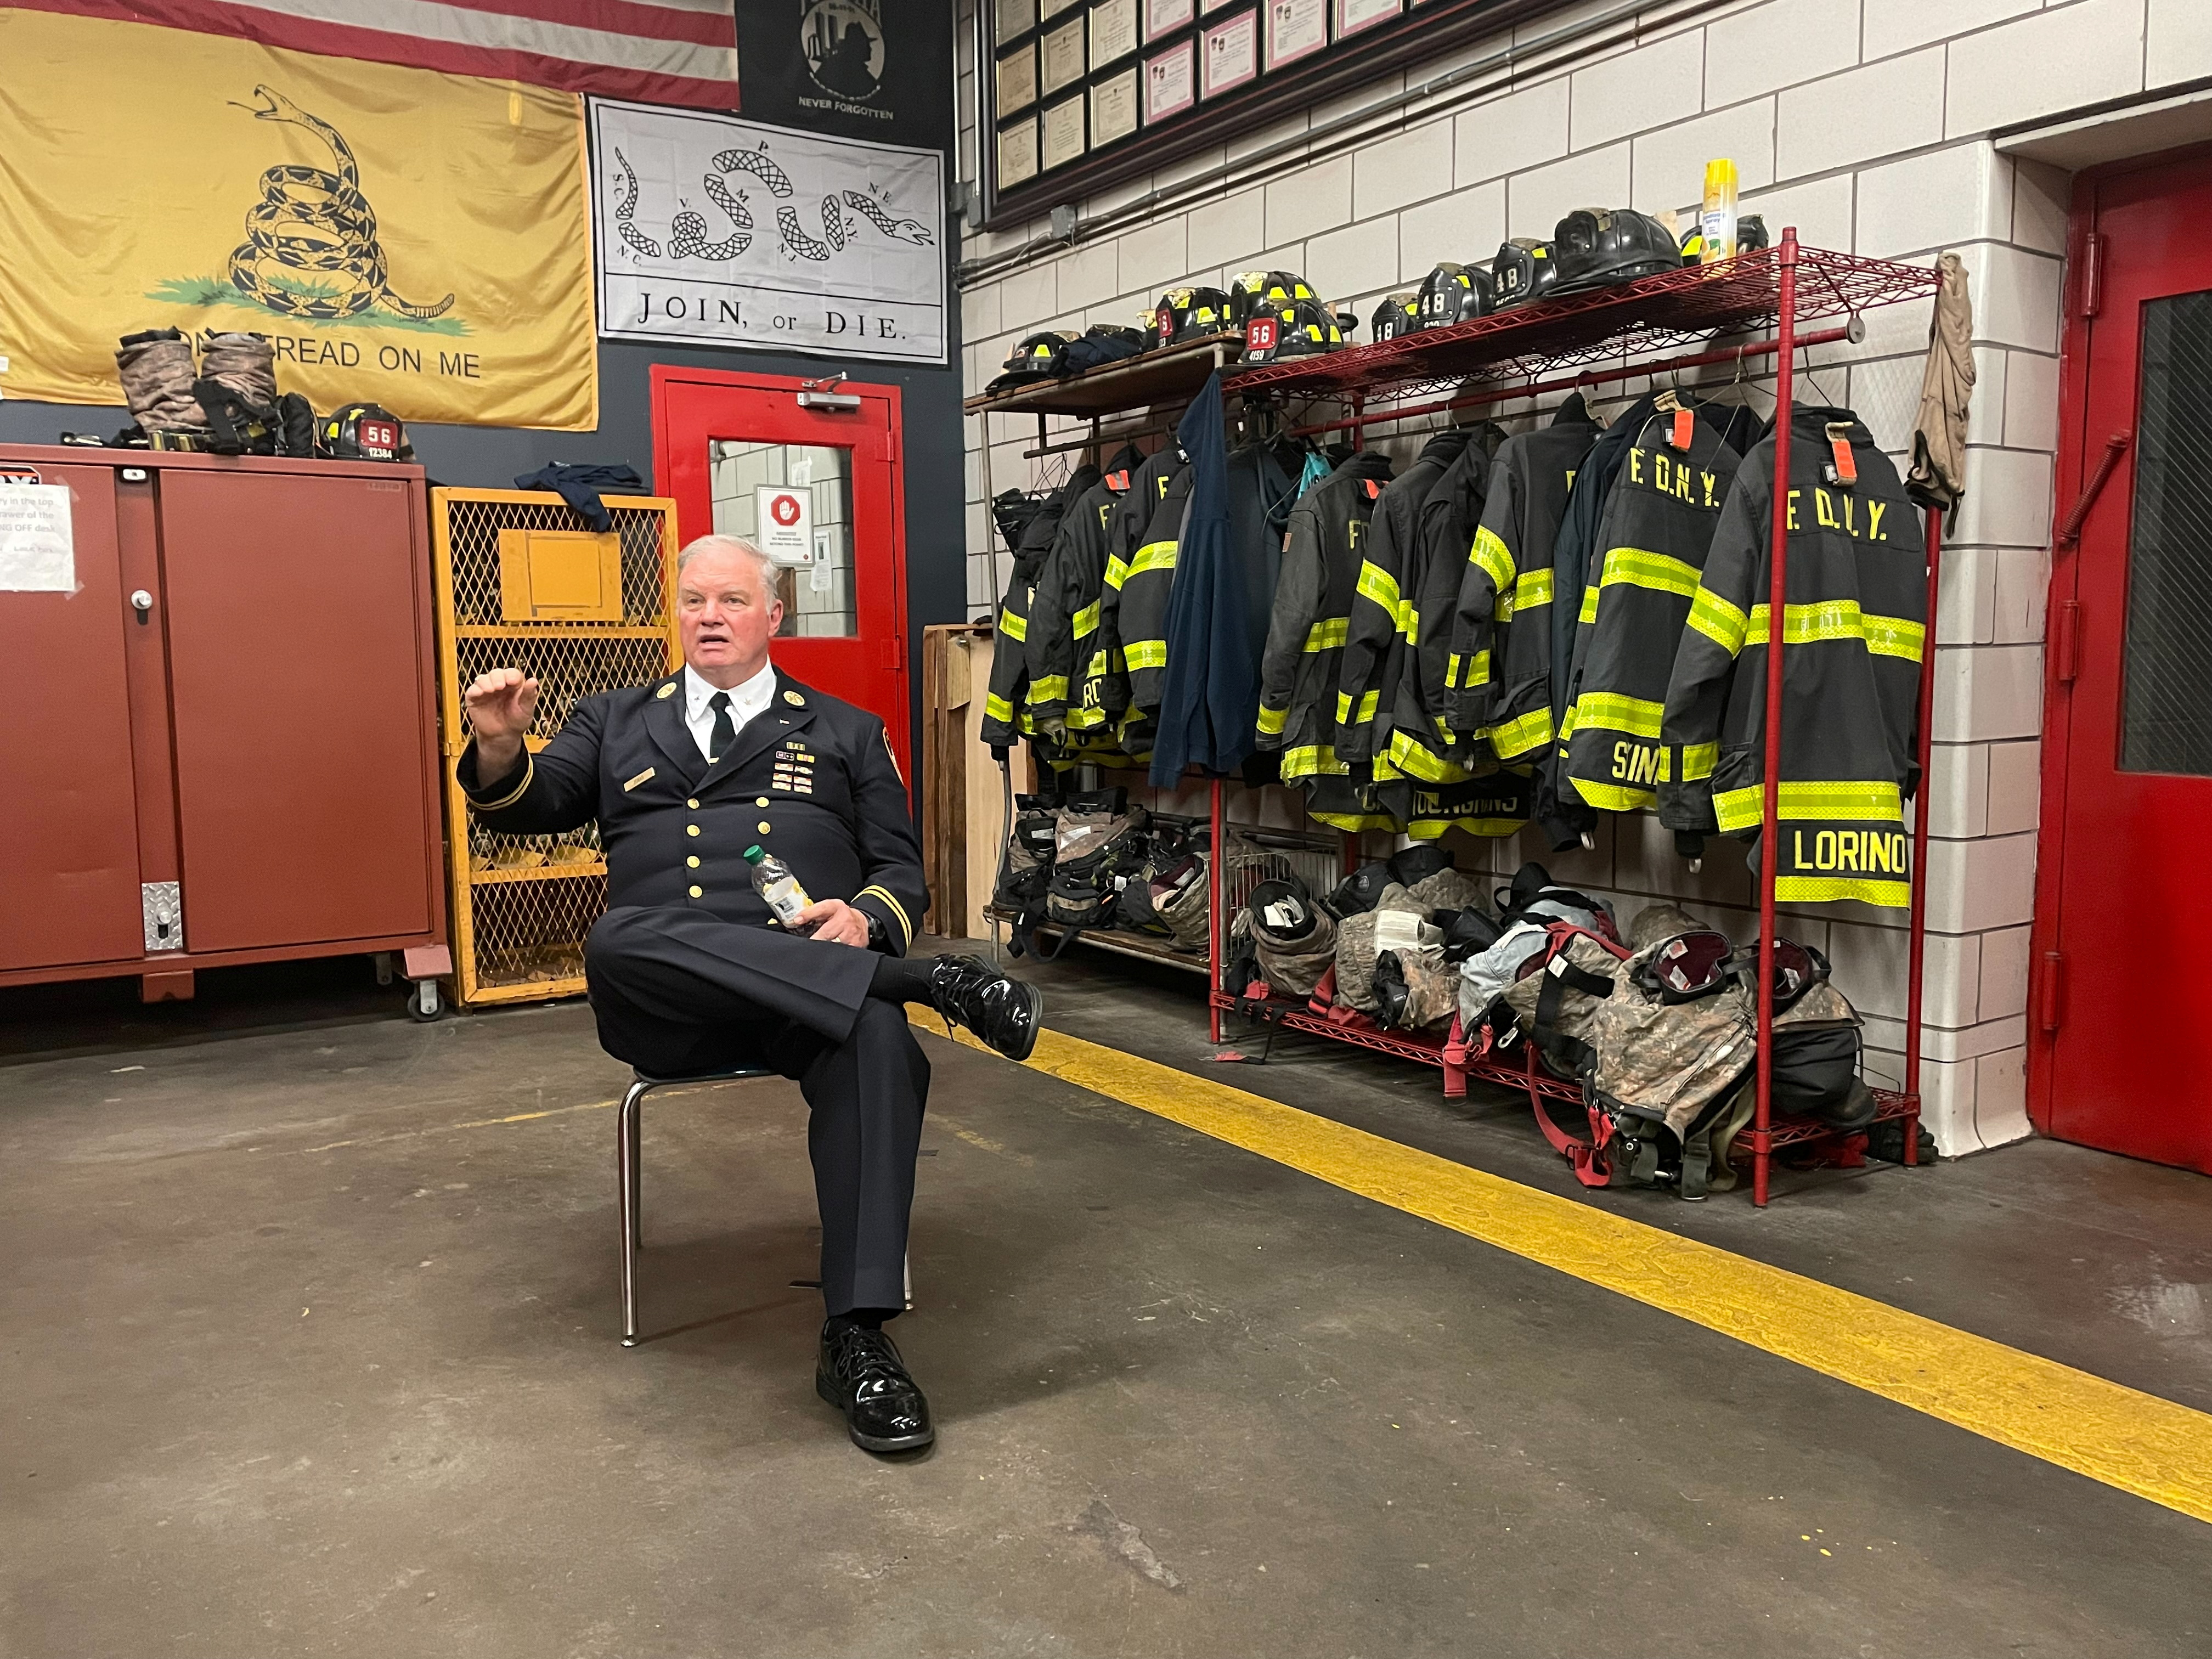 Jay Jonas, a deputy chief at the New York Fire Department, attends an interview with Reuters at a fire station in the Bronx, ahead of the 20th anniversary of the September 11 attacks, in New York, U.S. August 17, 2021. REUTERS/Dan Fastenberg